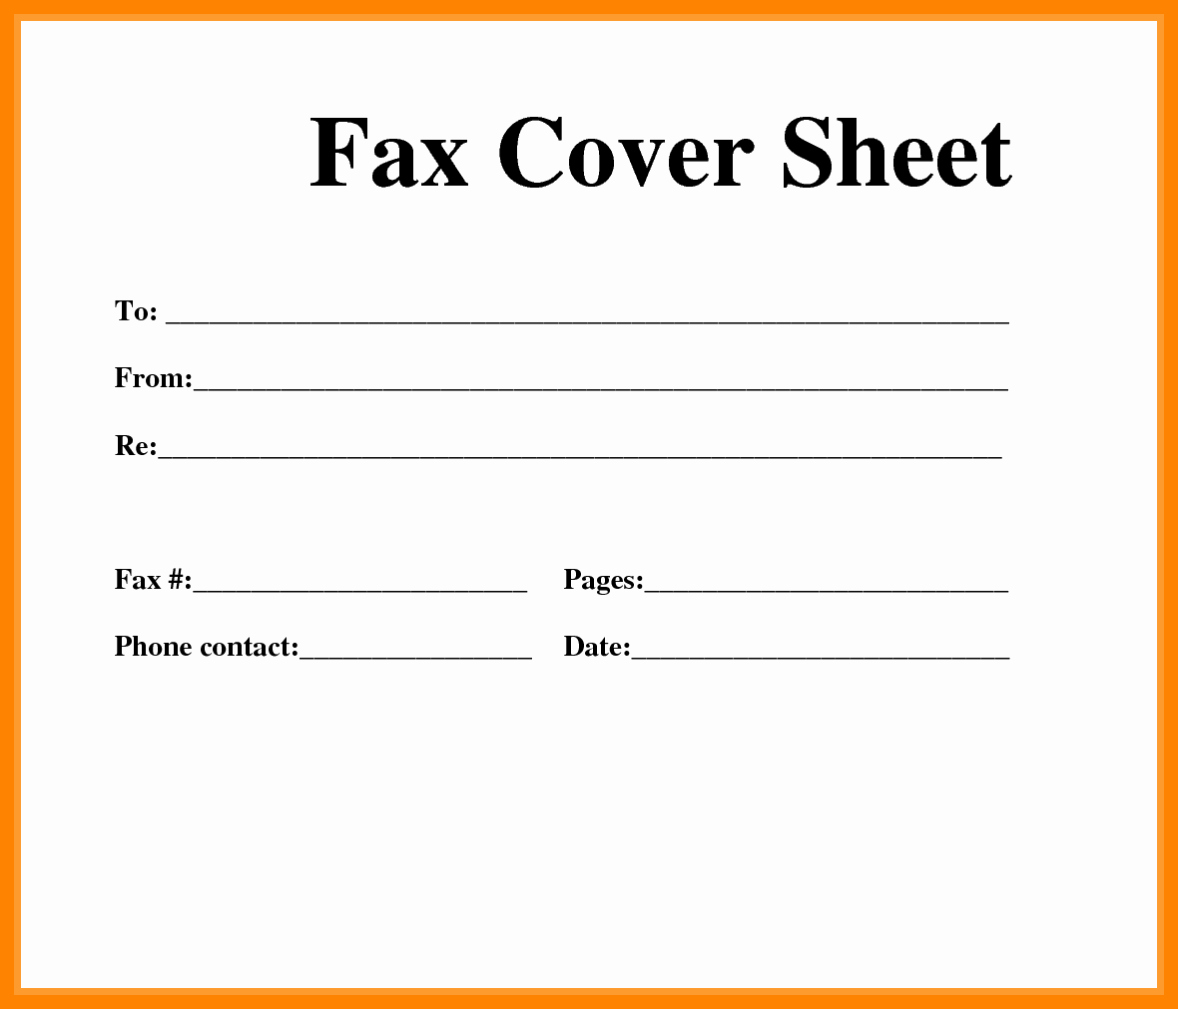 Fax Cover Sheet Template Best Of Basic Fax Cover Sheet